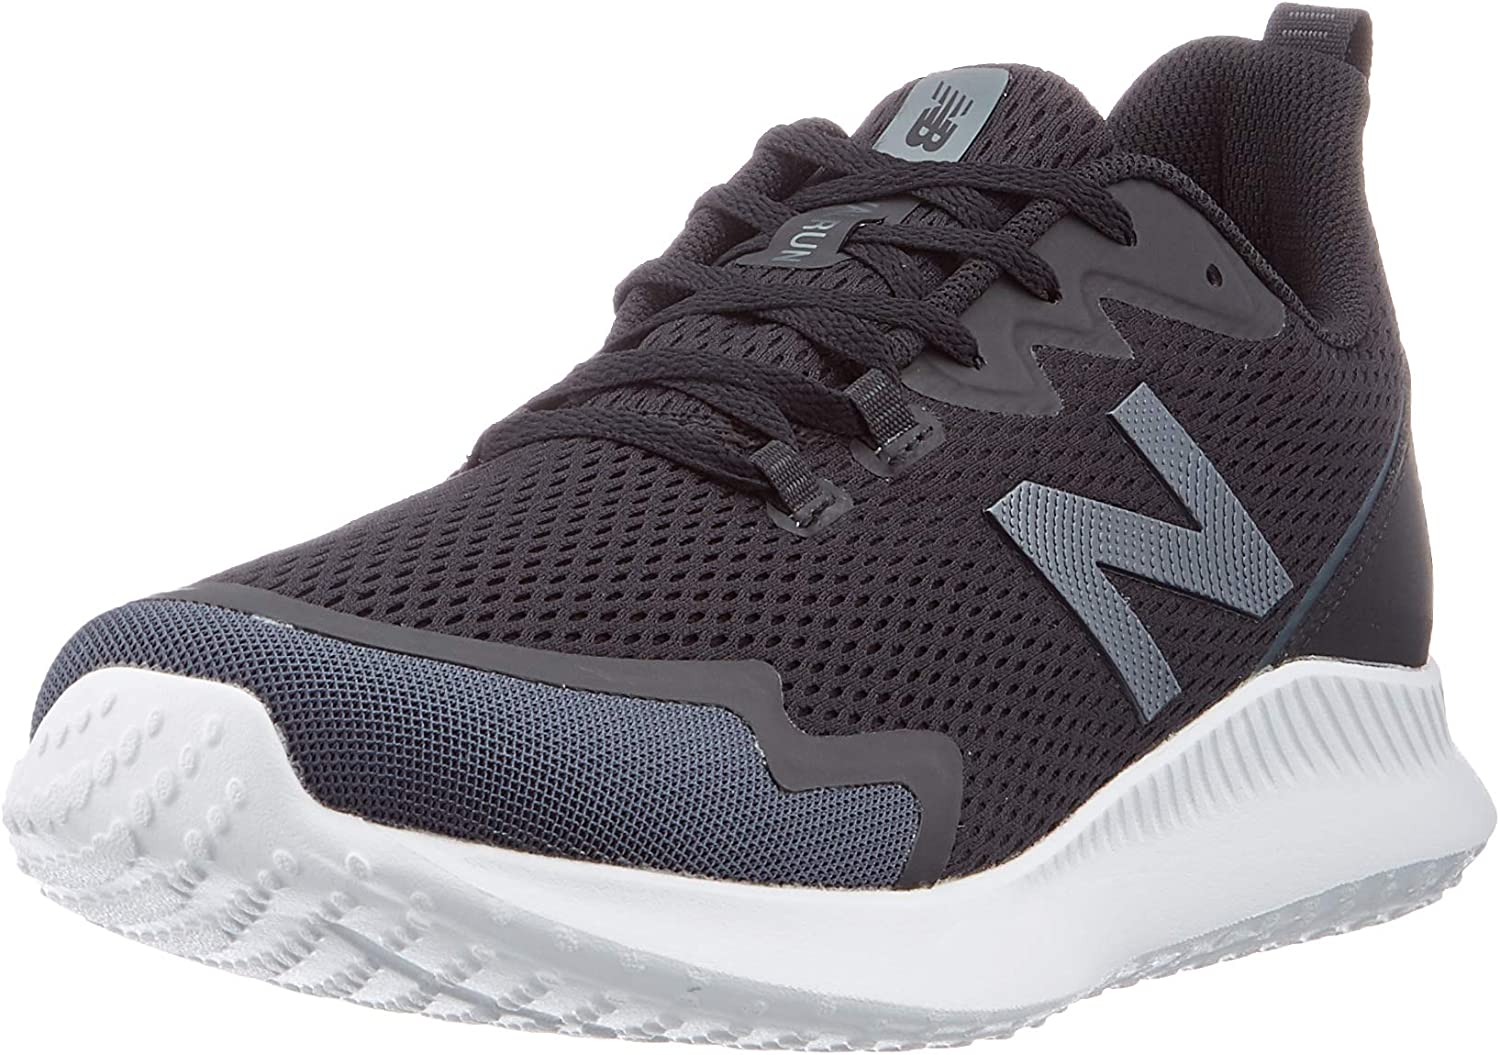 New Balance Ryval Run, Zapatillas para Correr de Carretera para Hombre: New Balance: Amazon.es: Zapatos y complementos